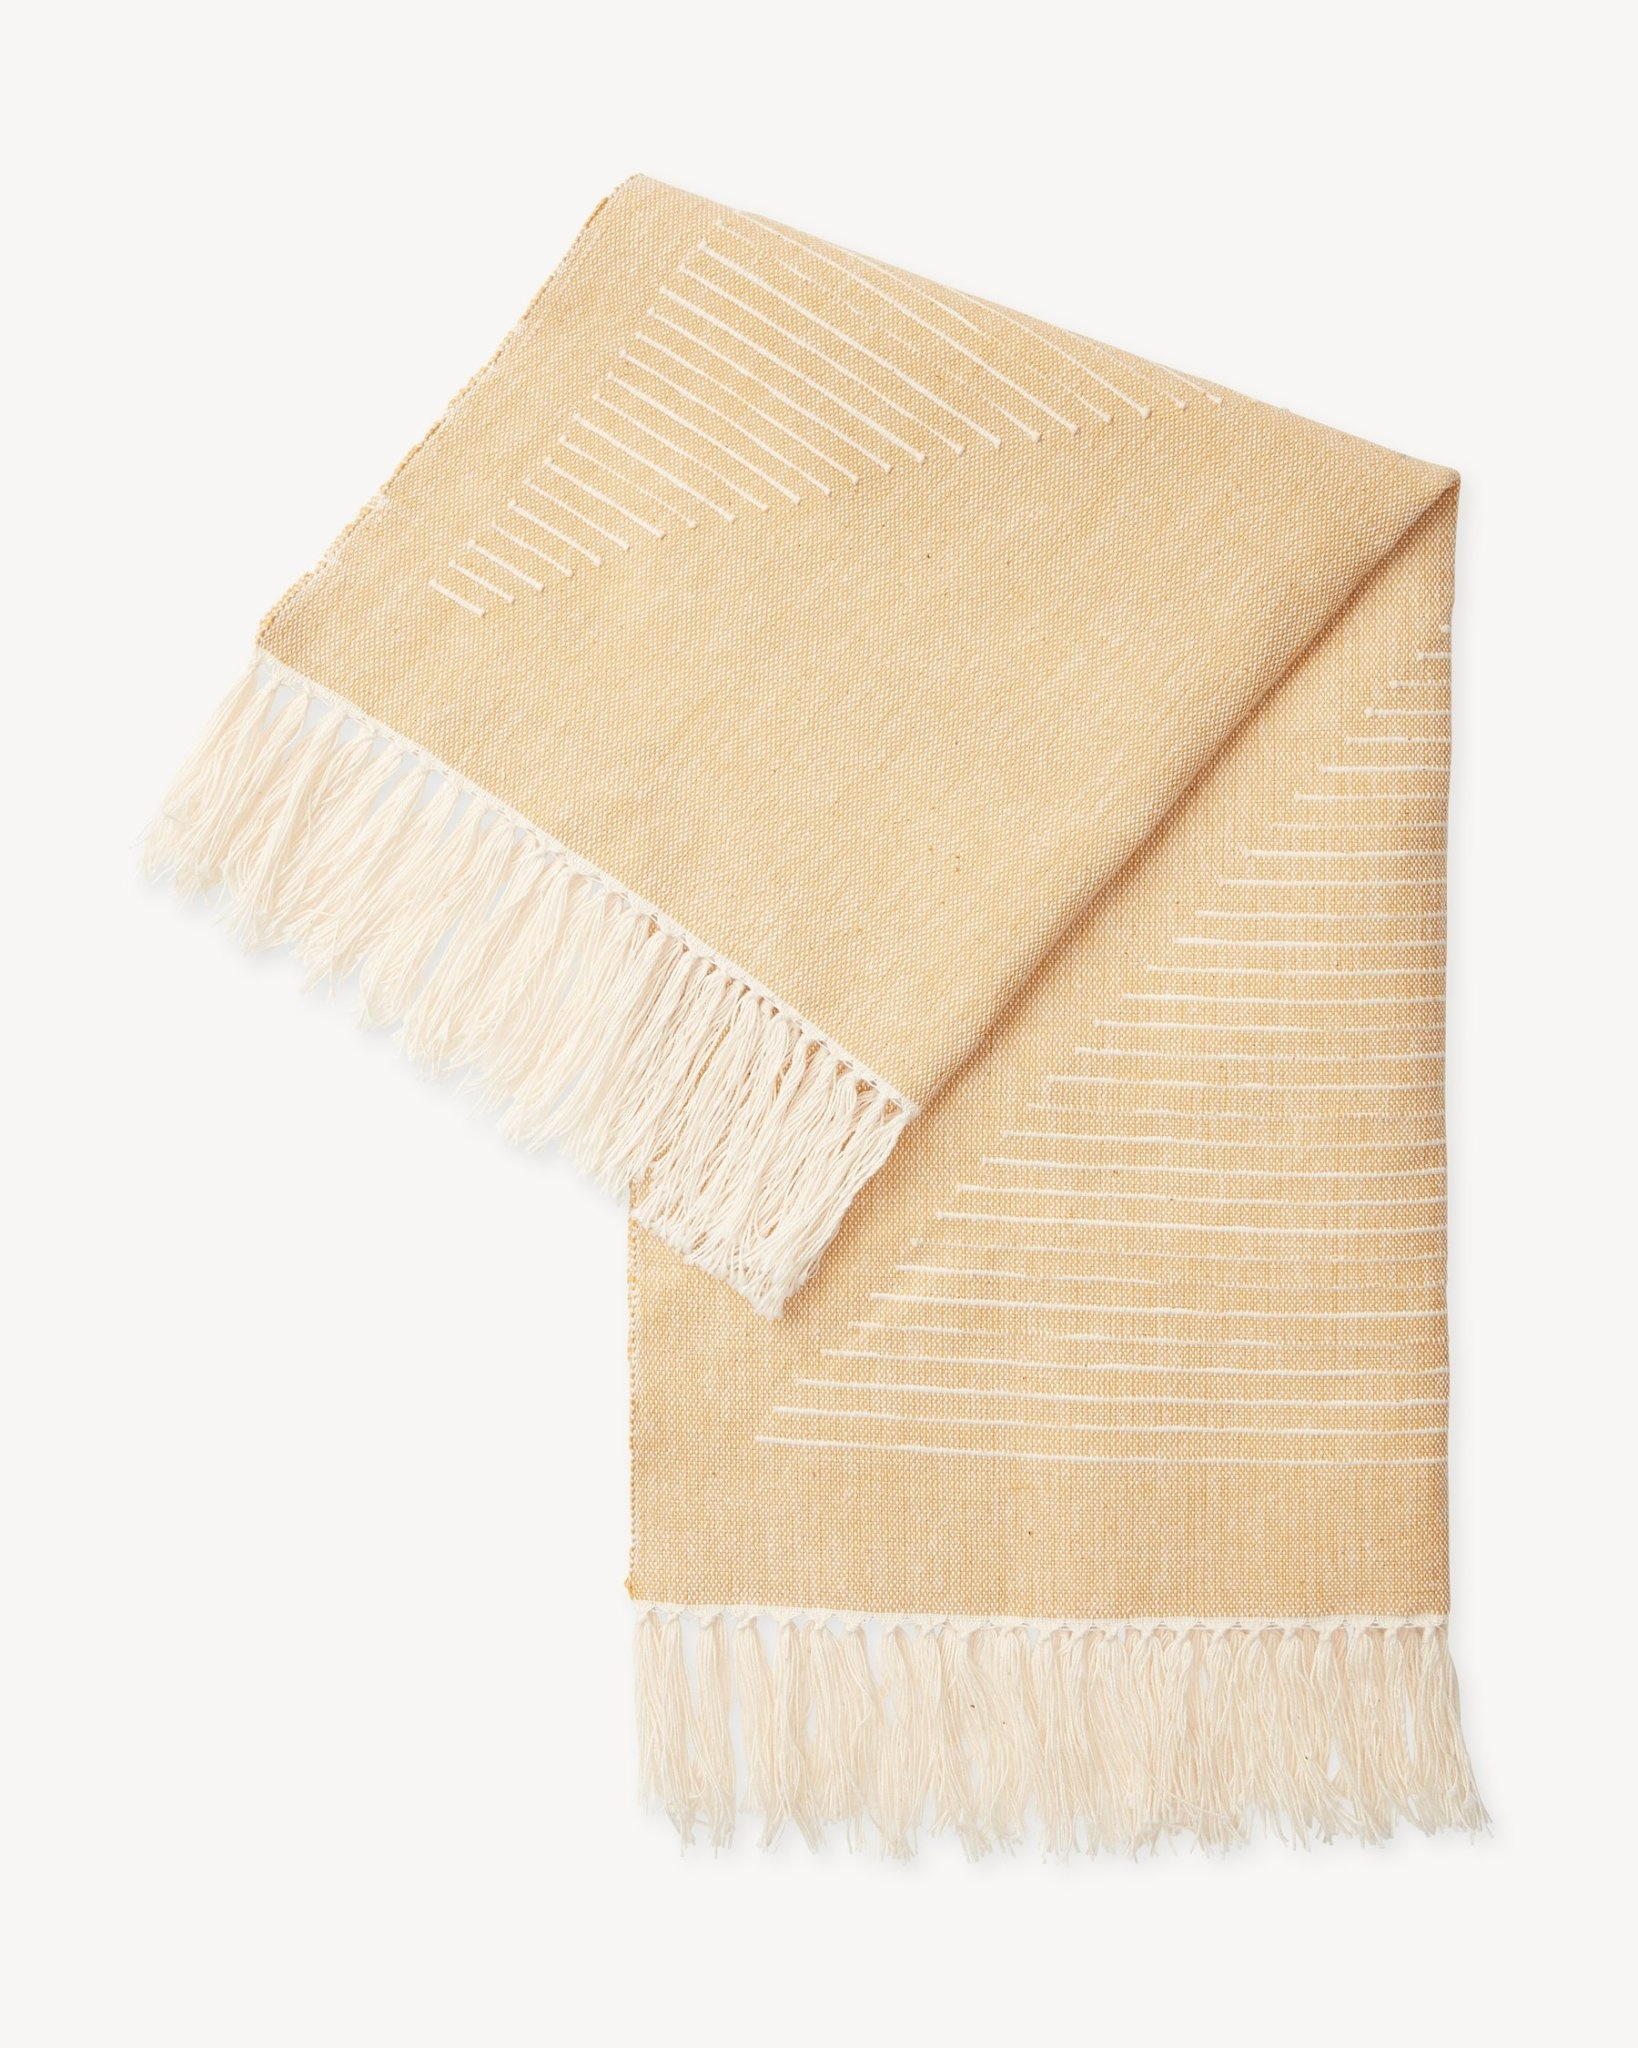 Minna Triangle Towel in Gold